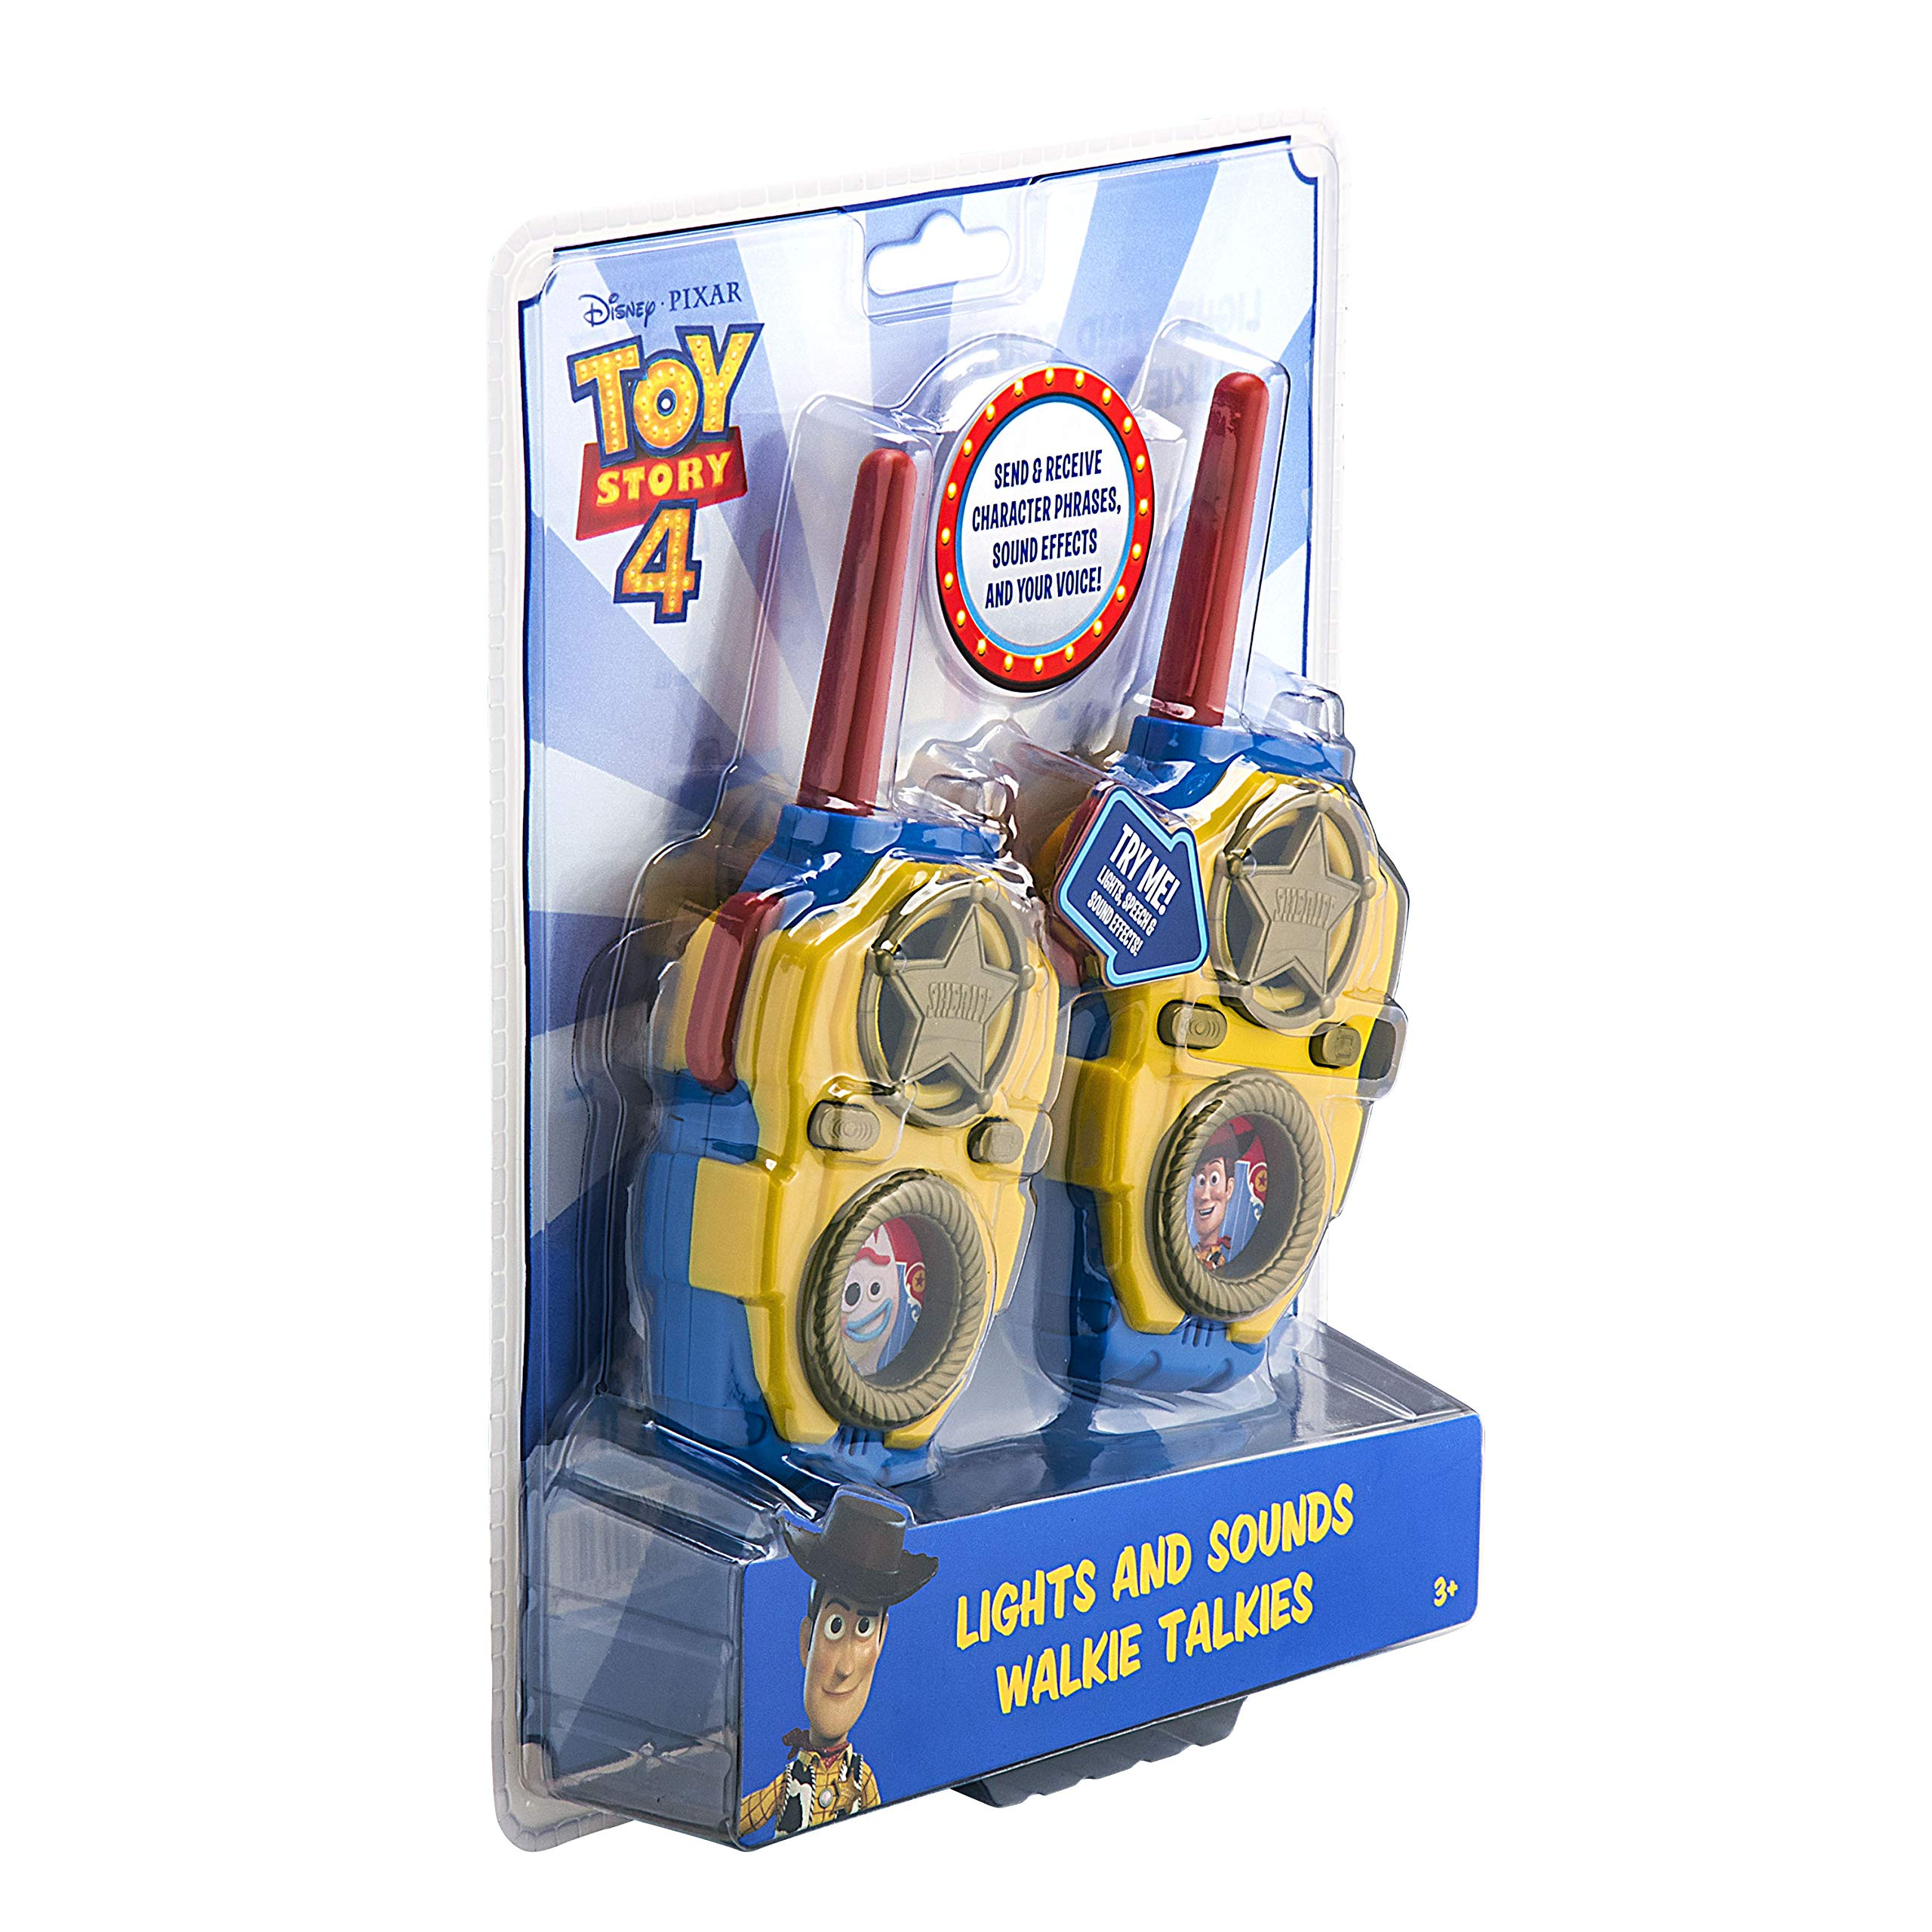 eKids Toy Story 4 FRS Walkie Talkies with Lights and Sounds Kid Friendly Easy to Use by eKids (Image #8)